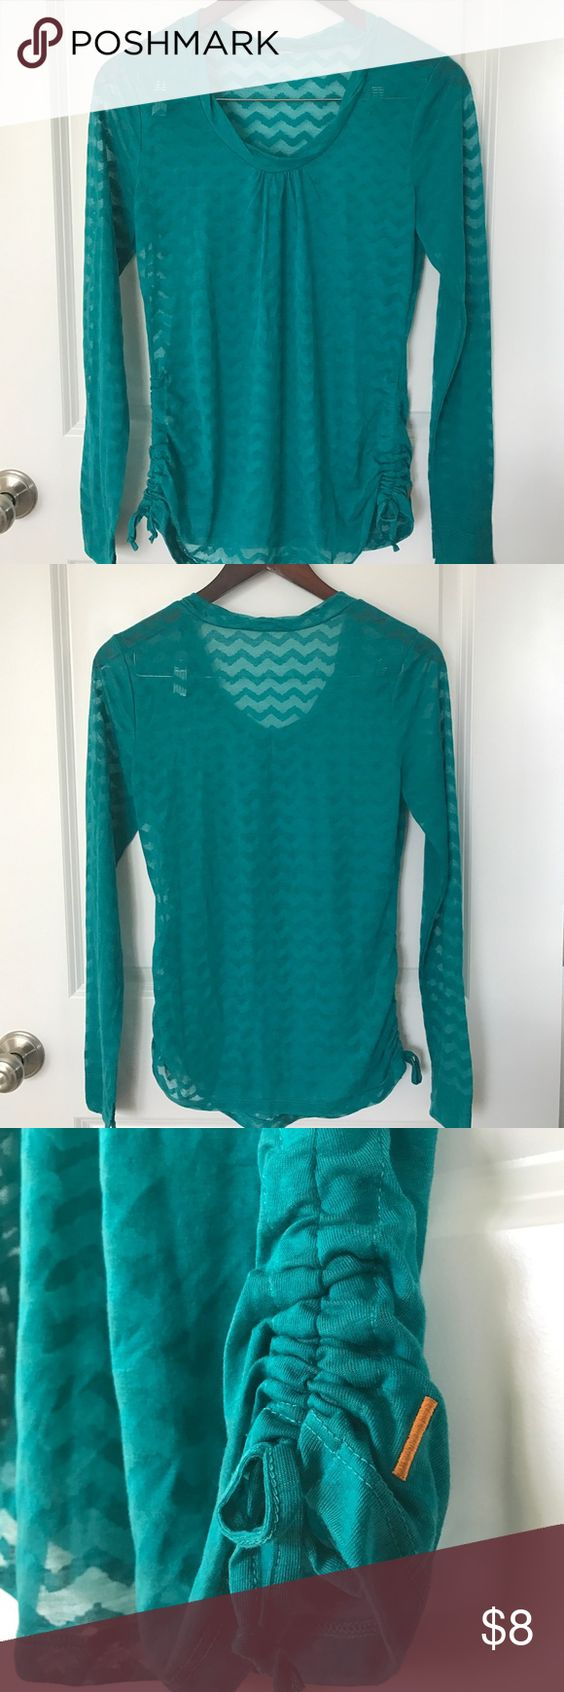 Lucy long sleeve workout shirt, size xs. Lucy long sleeve workout shirt, size xs. Ruched side, sheer flowy light weight, perfect for yoga, studio training.  No tag, great condition. Lucy Tops Tees - Long Sleeve